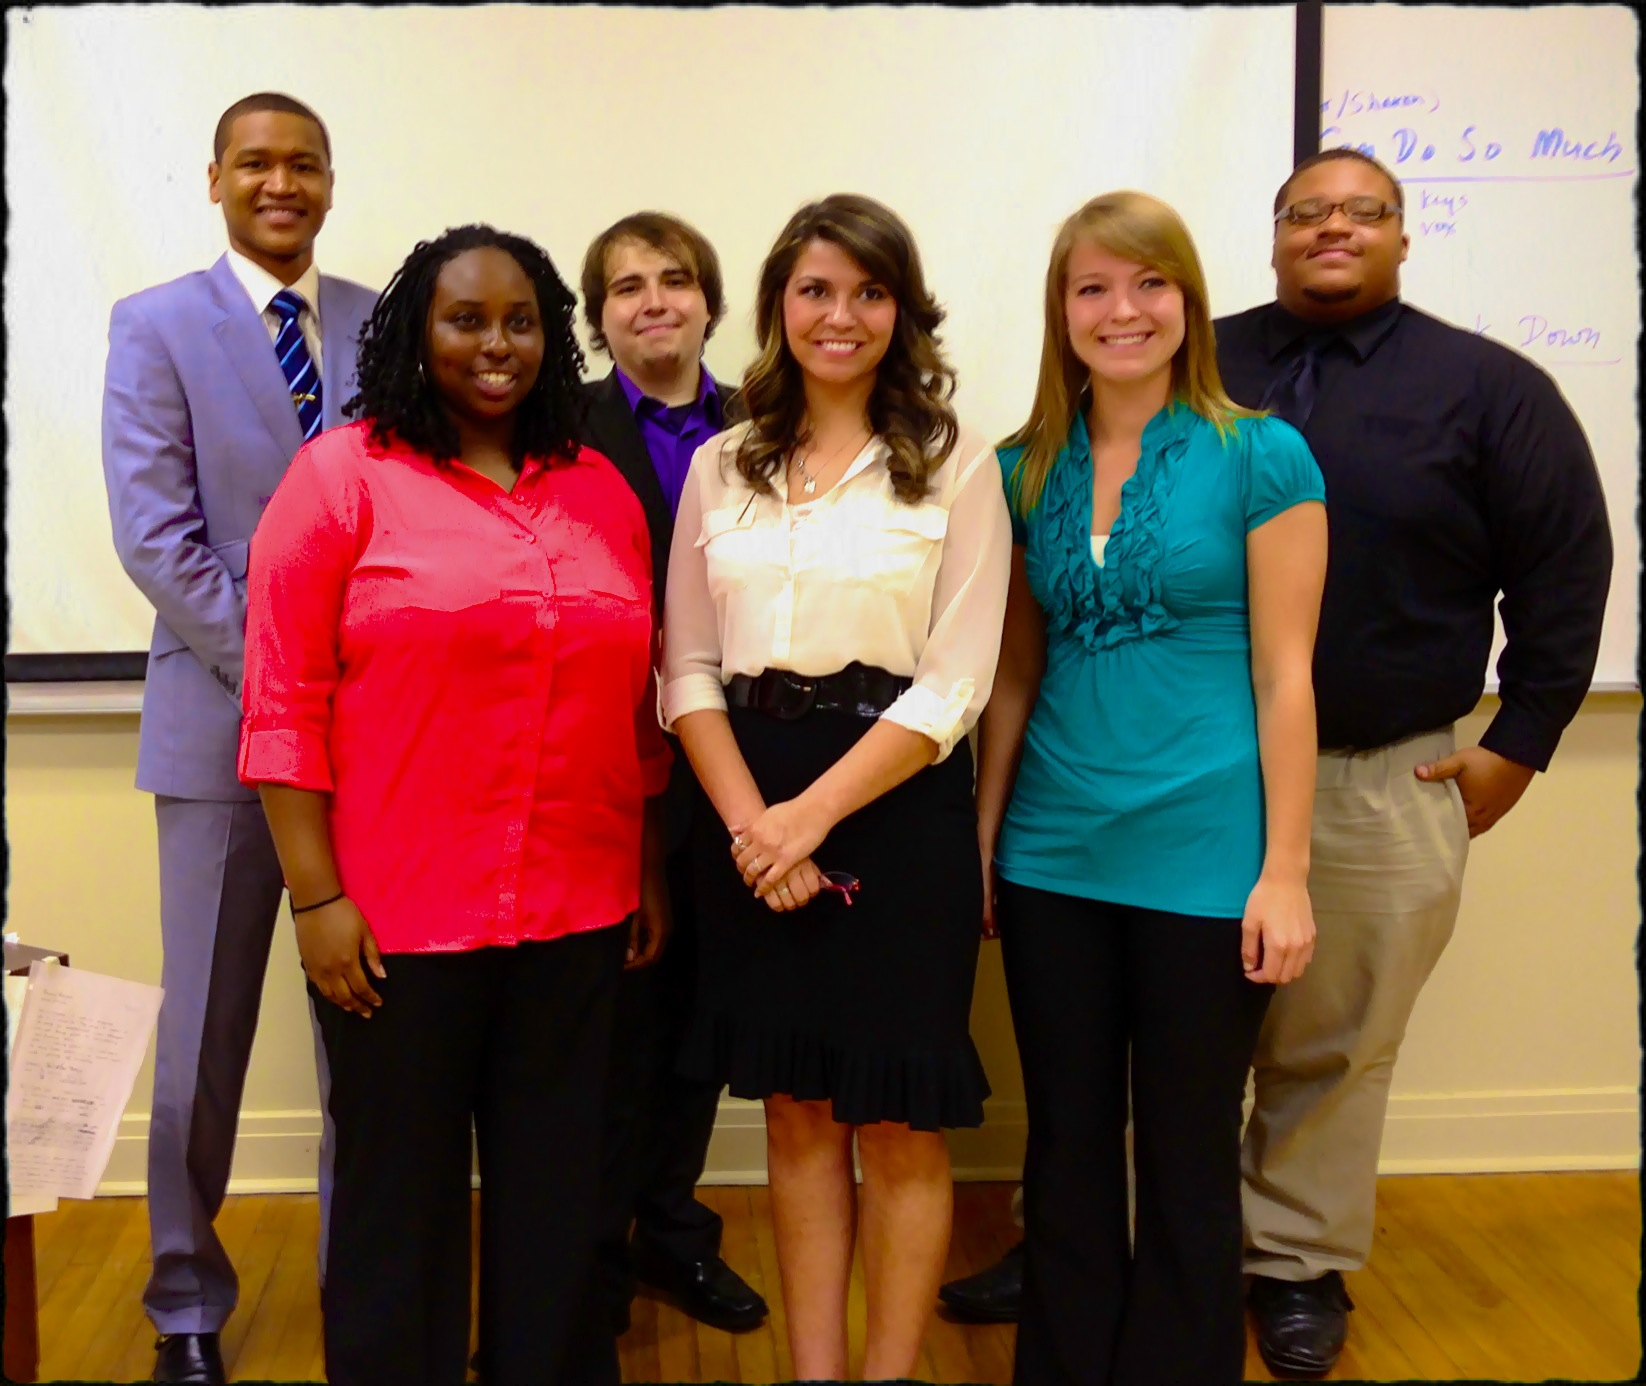 The three teams of Laeitta Wade of Greenville and Lindsey Zweber of Olive Branch; Hyacine Do REGO of Libreville, Gabon, Africa and Alyssa Shetley of Salem, Illinois;  and Matthew Coleman of Jackson and Jeremy Carodine of Cleveland.